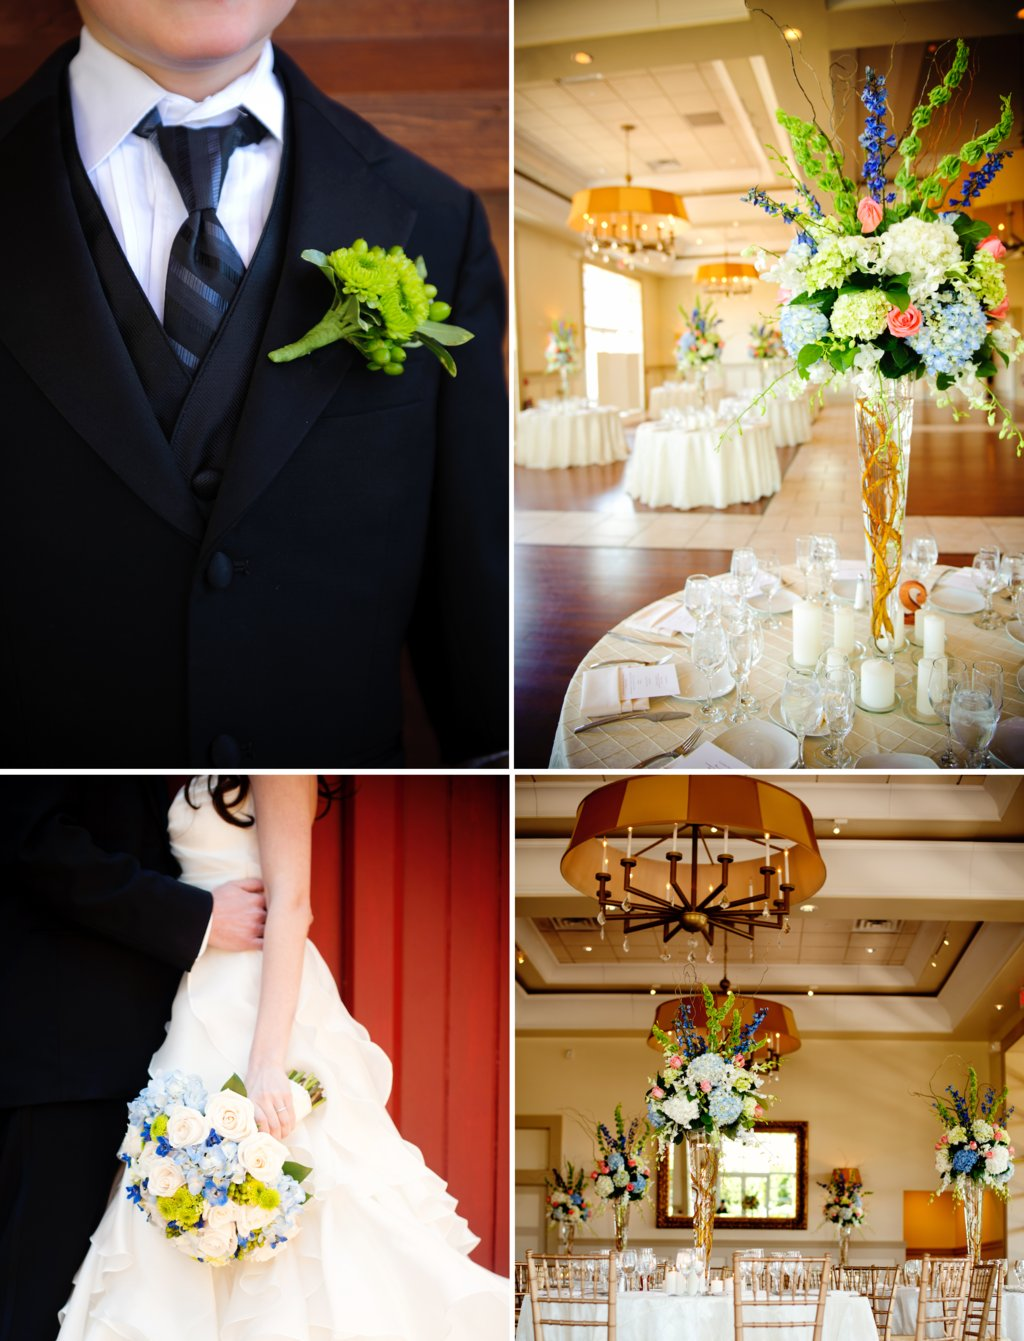 Elegant Real Wedding With Simple Details Topiary Centerpieces Blue Ivory Green Bouquet